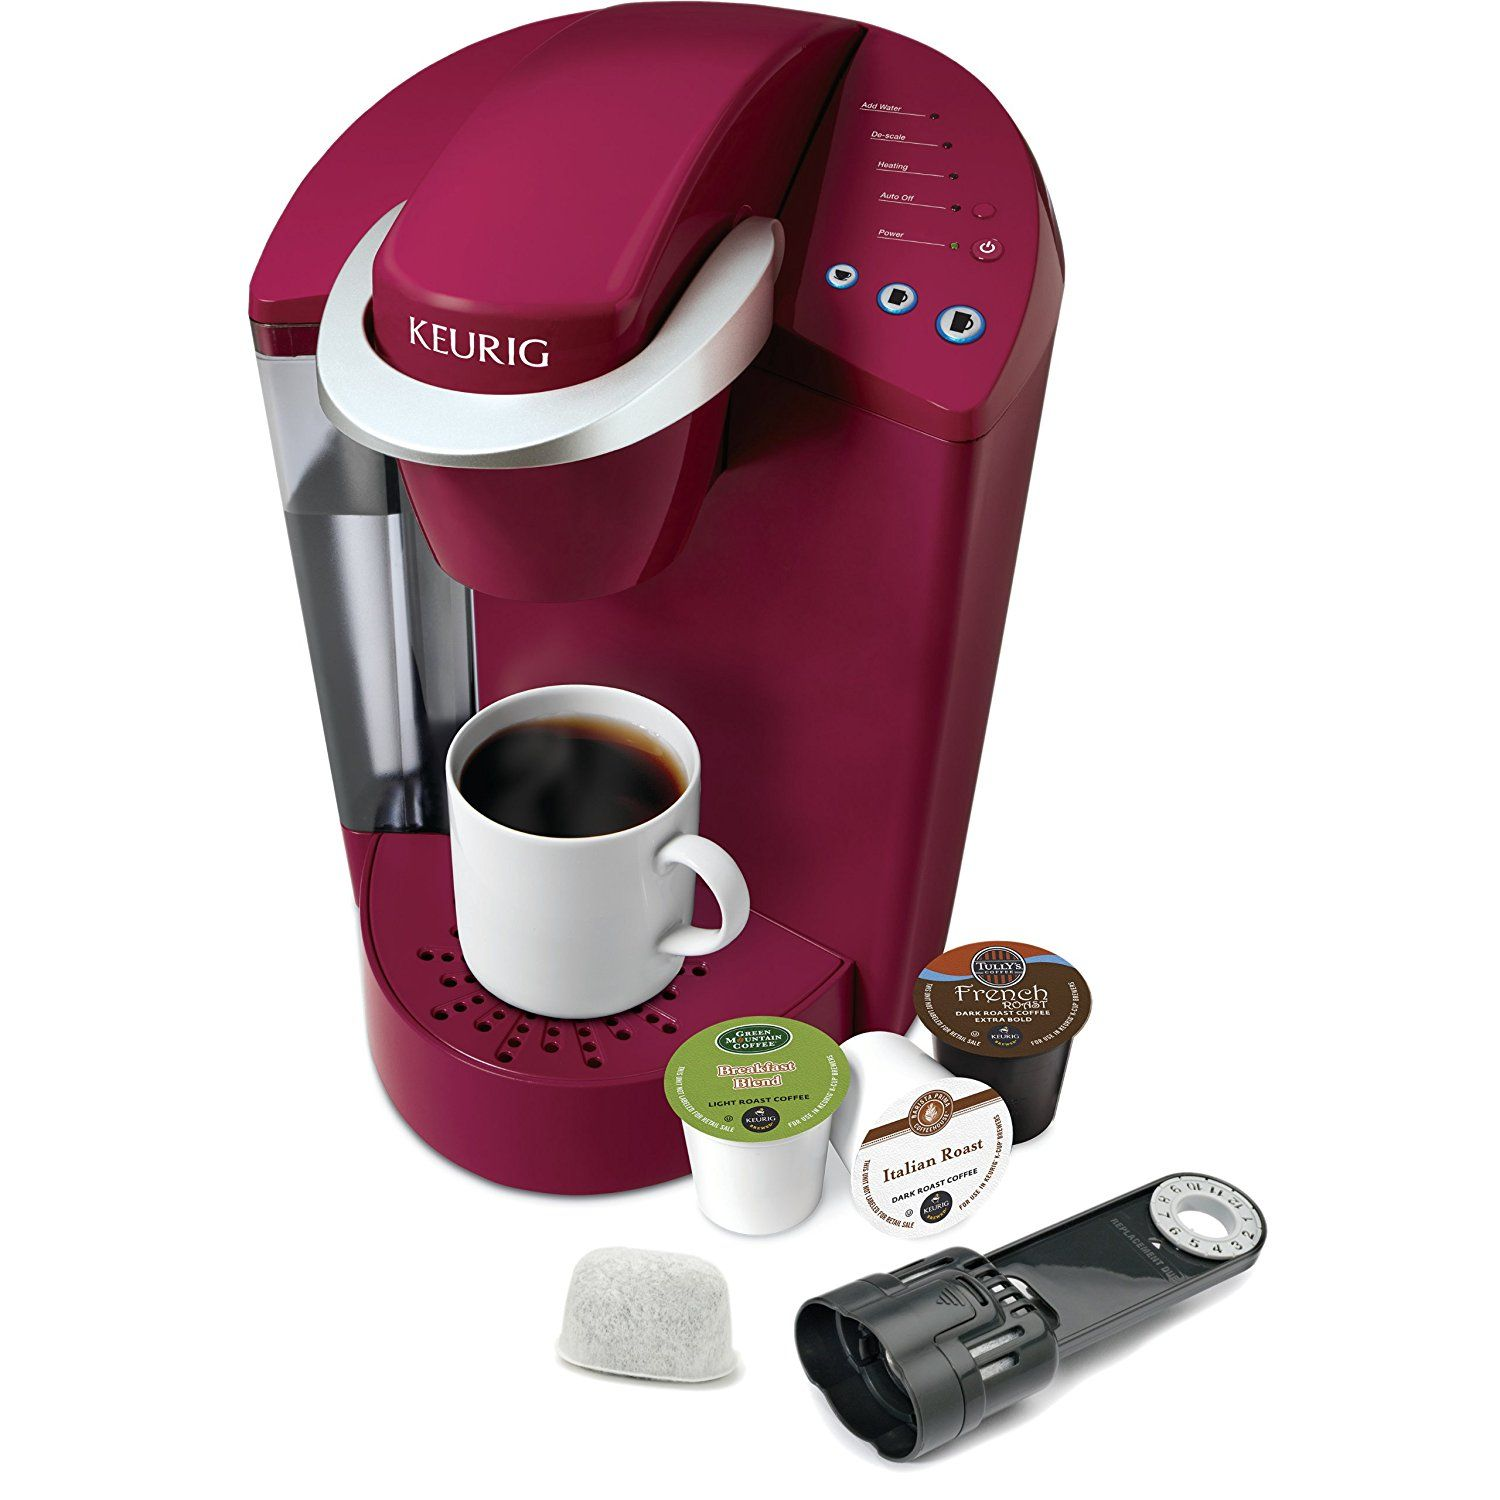 Keurig K45 Elite Brewing System Rhubarb Startling Review